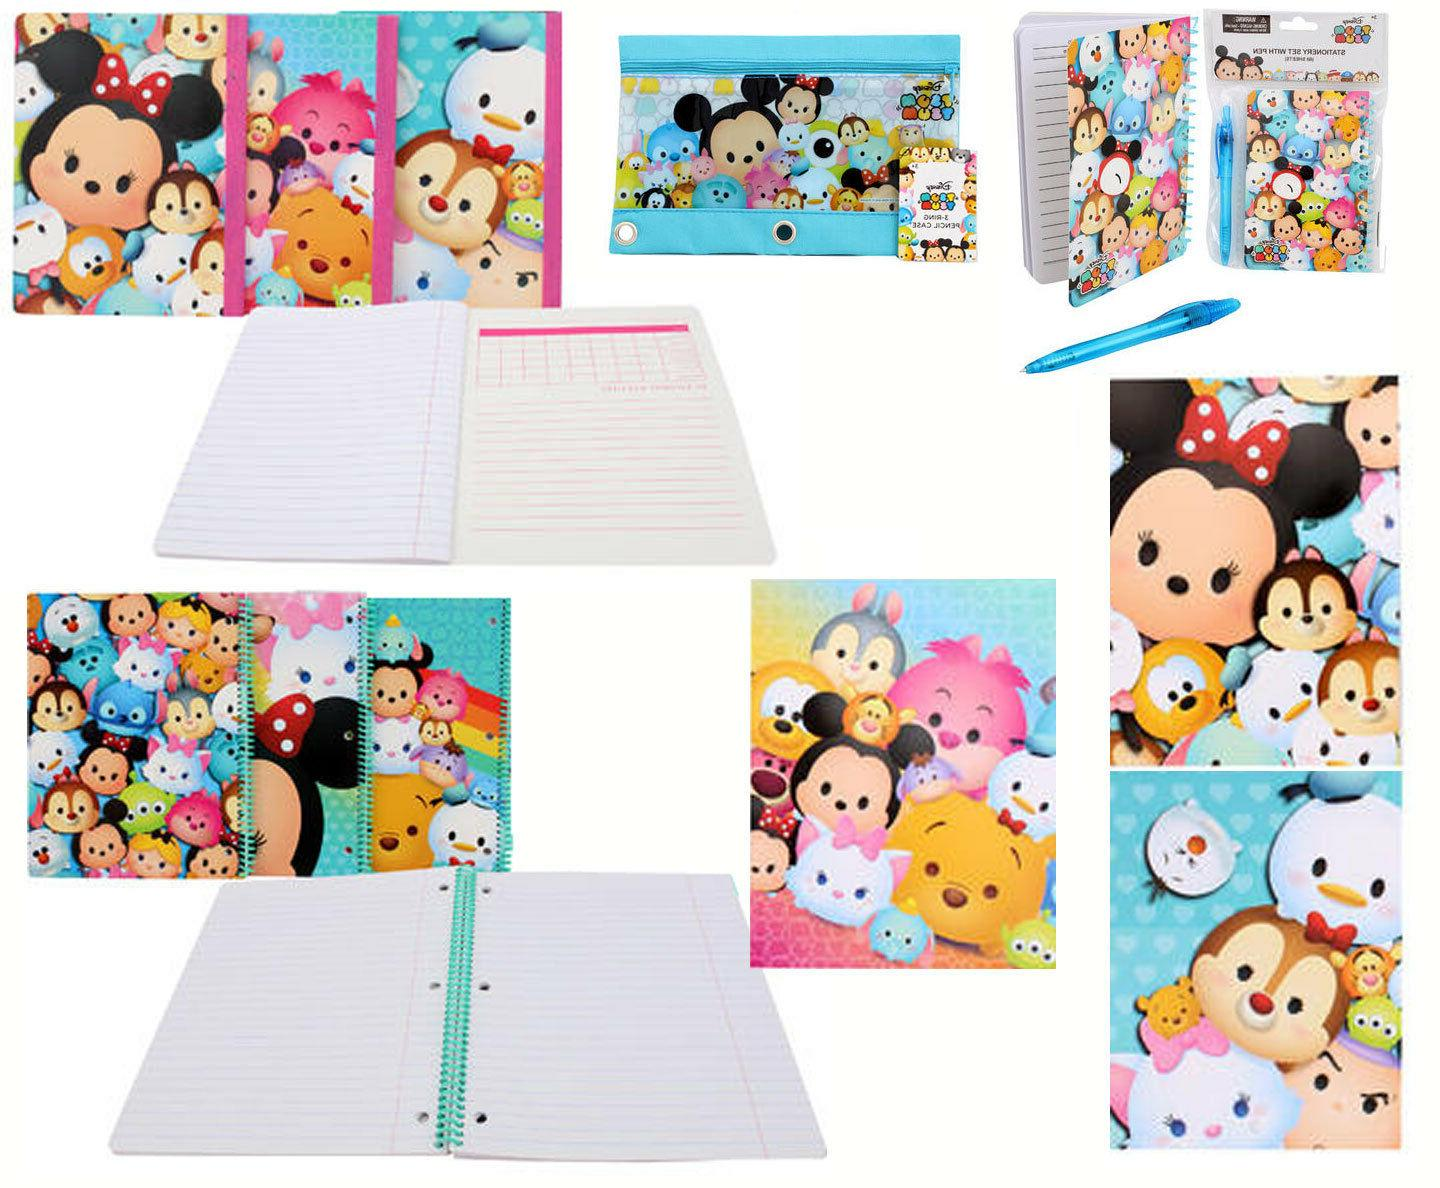 DISNEY Tsum Tsum 6pc Stationary Gift Set Folder Notebook Dia